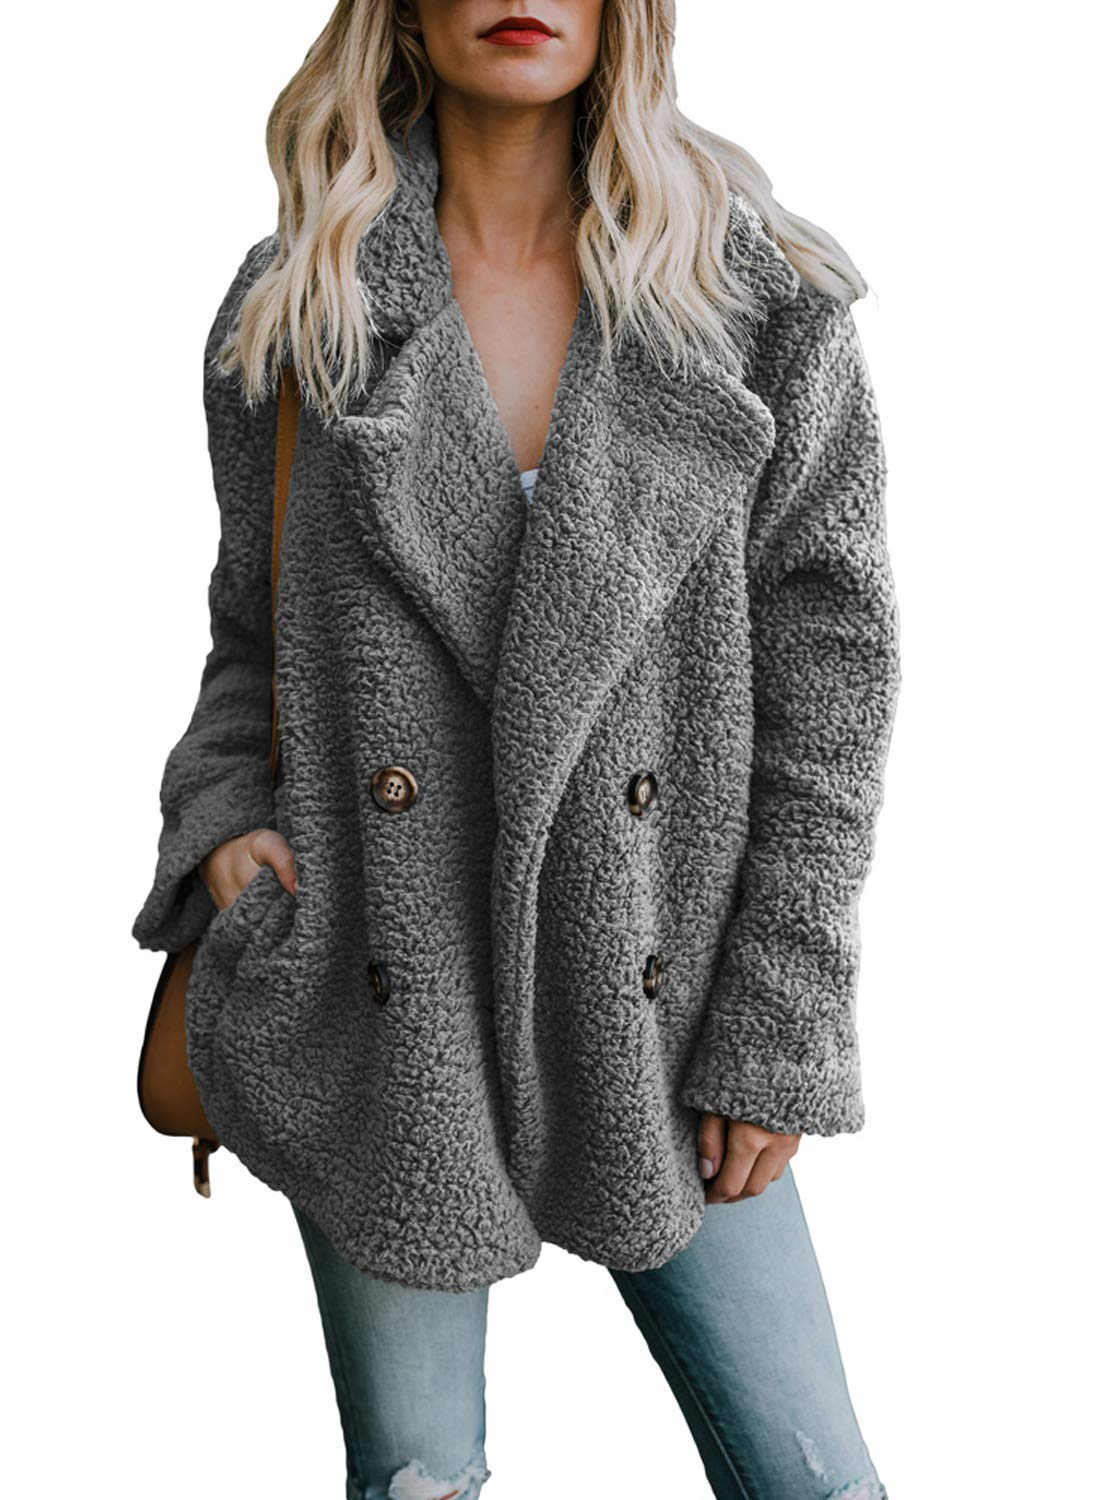 Aleumdr Womens Cozy Long Sleeve Open Front Lapel Faux Fur Fluffy Tops Jacket Coat Outerwear with Pocket